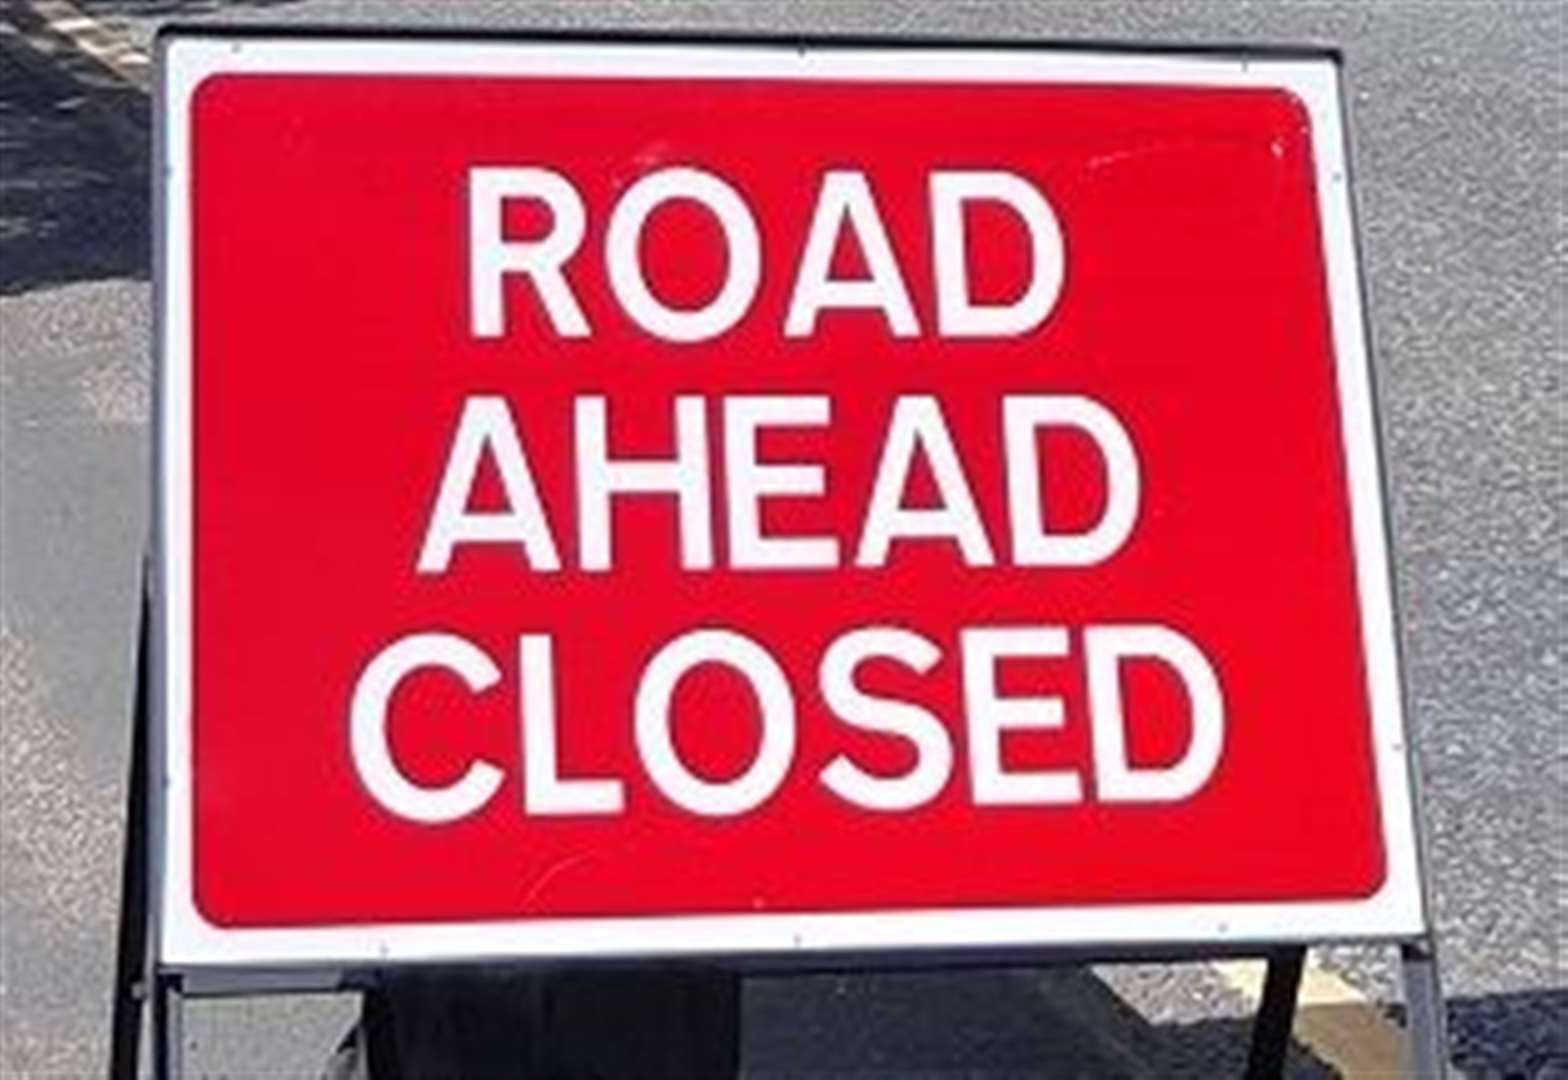 Road closure means traffic is forced to divert